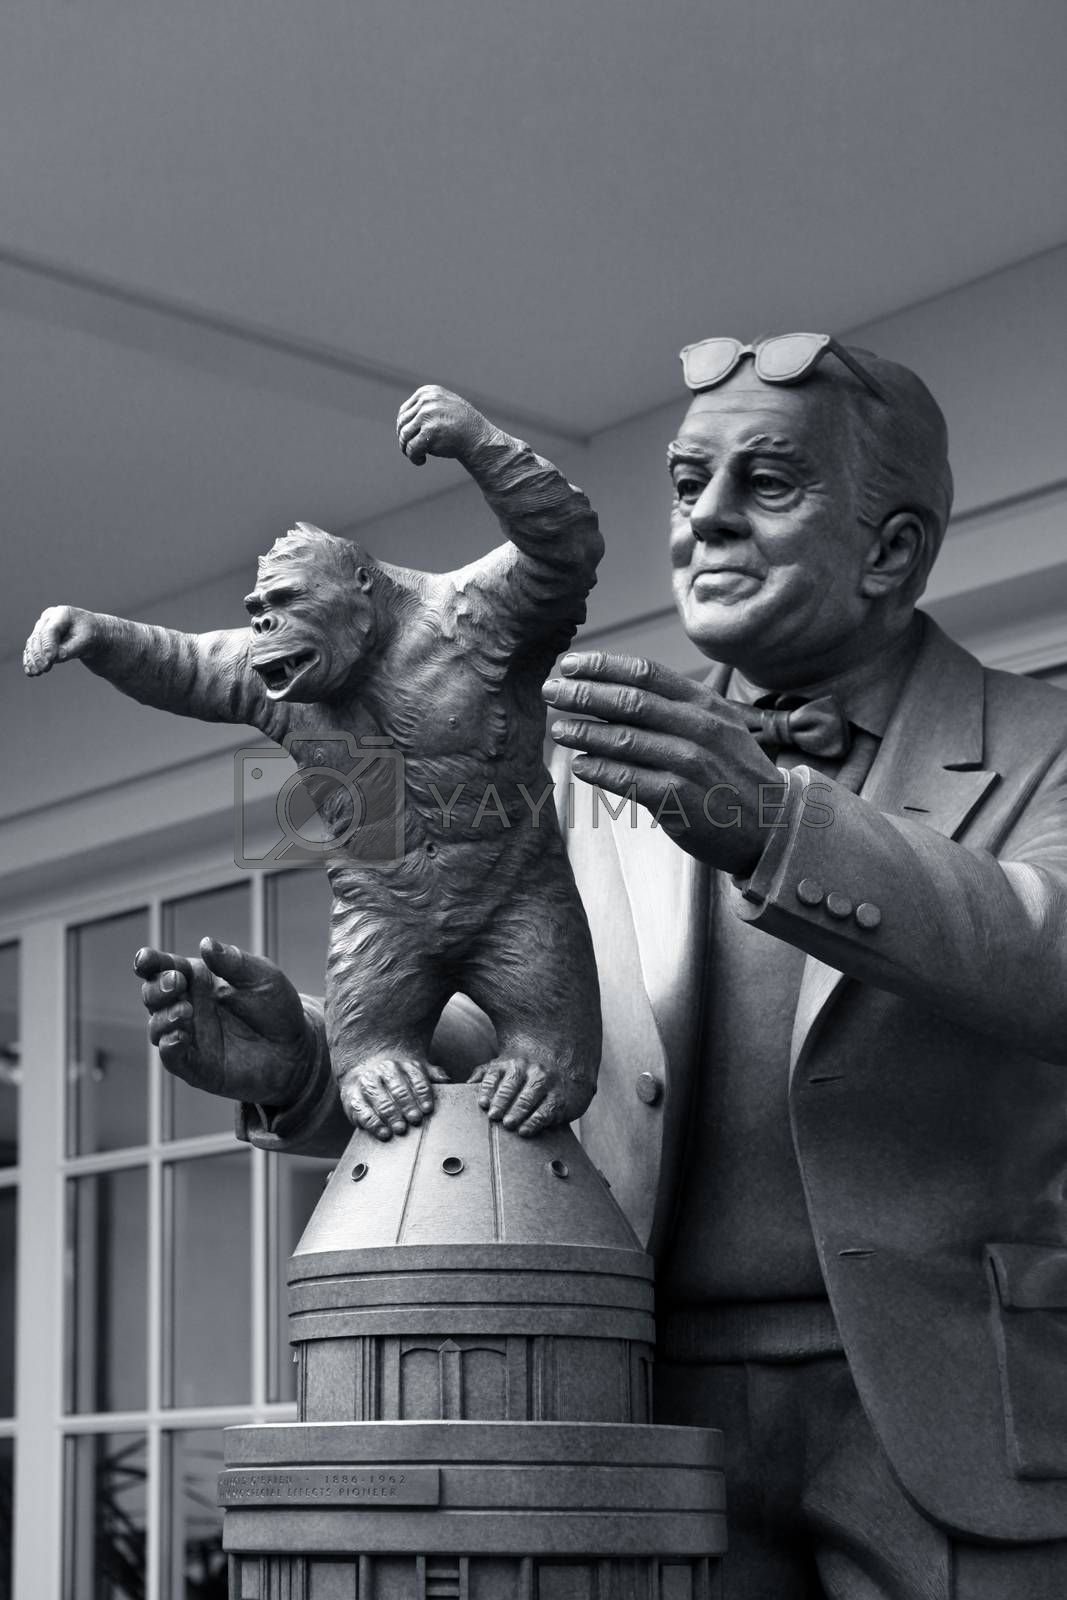 San Francisco, CA, USA - September 14, 2013 : sculpture Willis Harold O'Brien was an American motion picture special effects and stop-motion animation pioneer in the studio of Lucasfilm in San Francisco